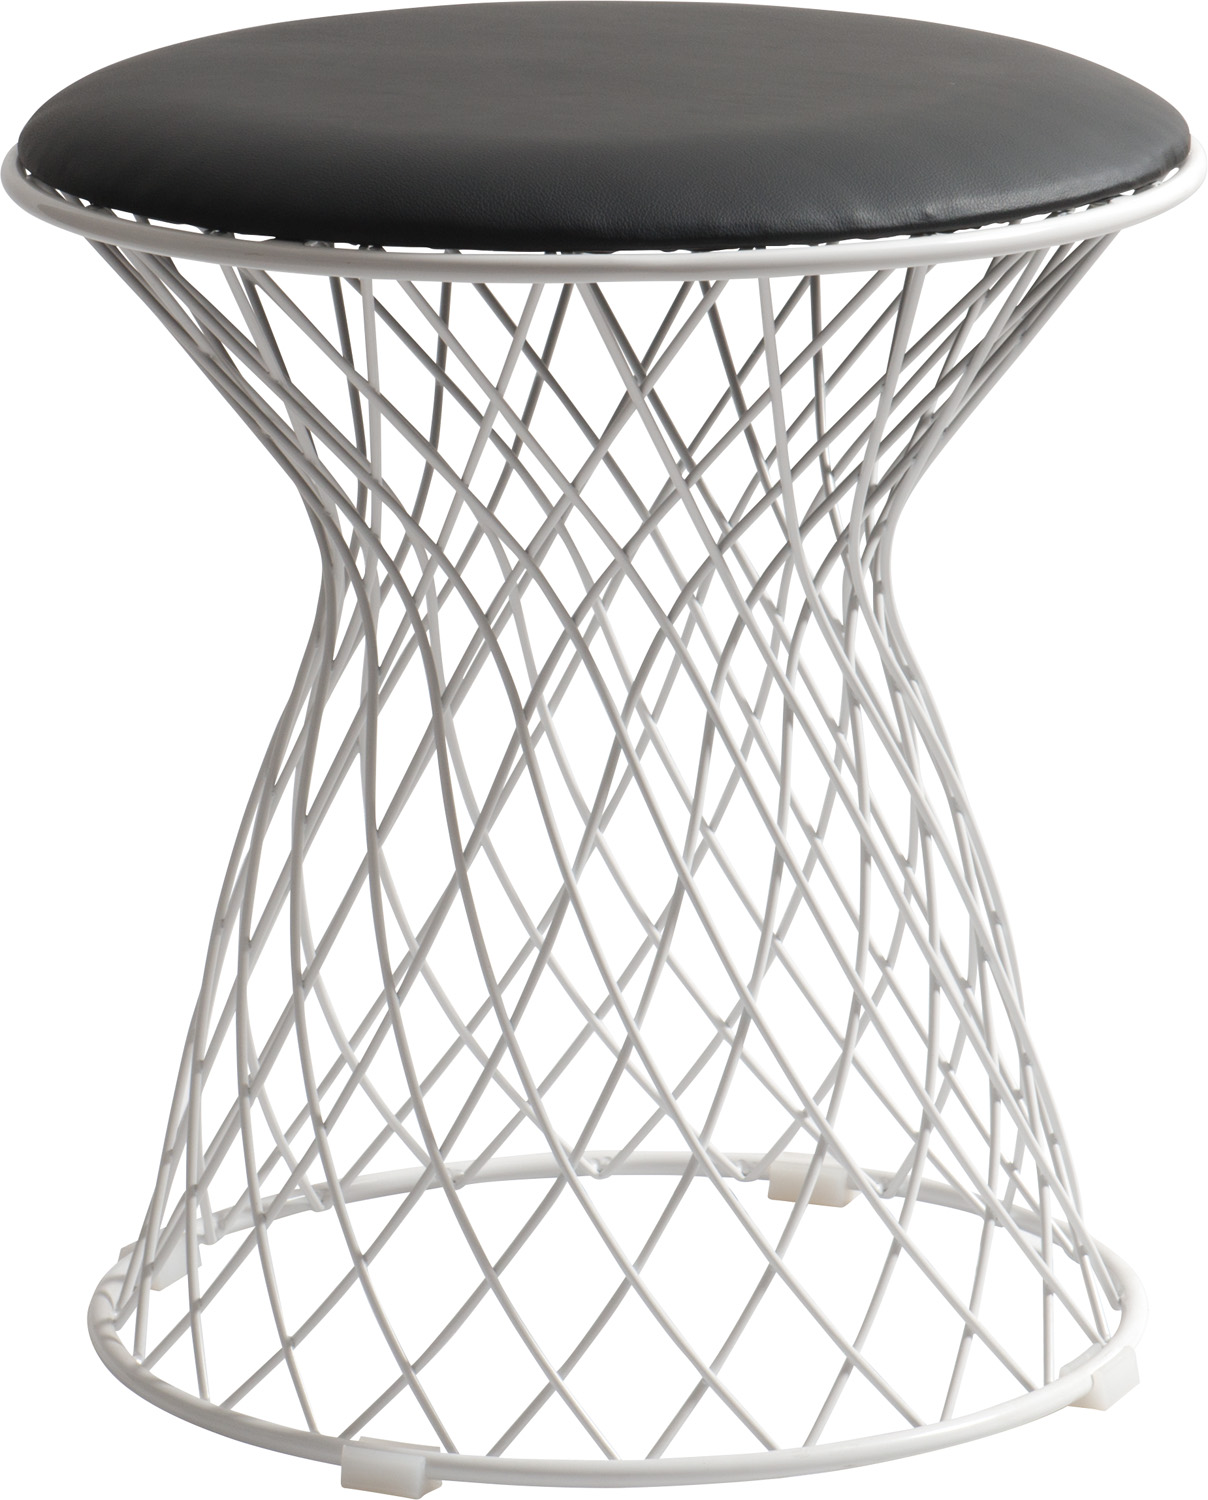 JSWMC-07   African Drum Shape Wired Metal Leisure Chair